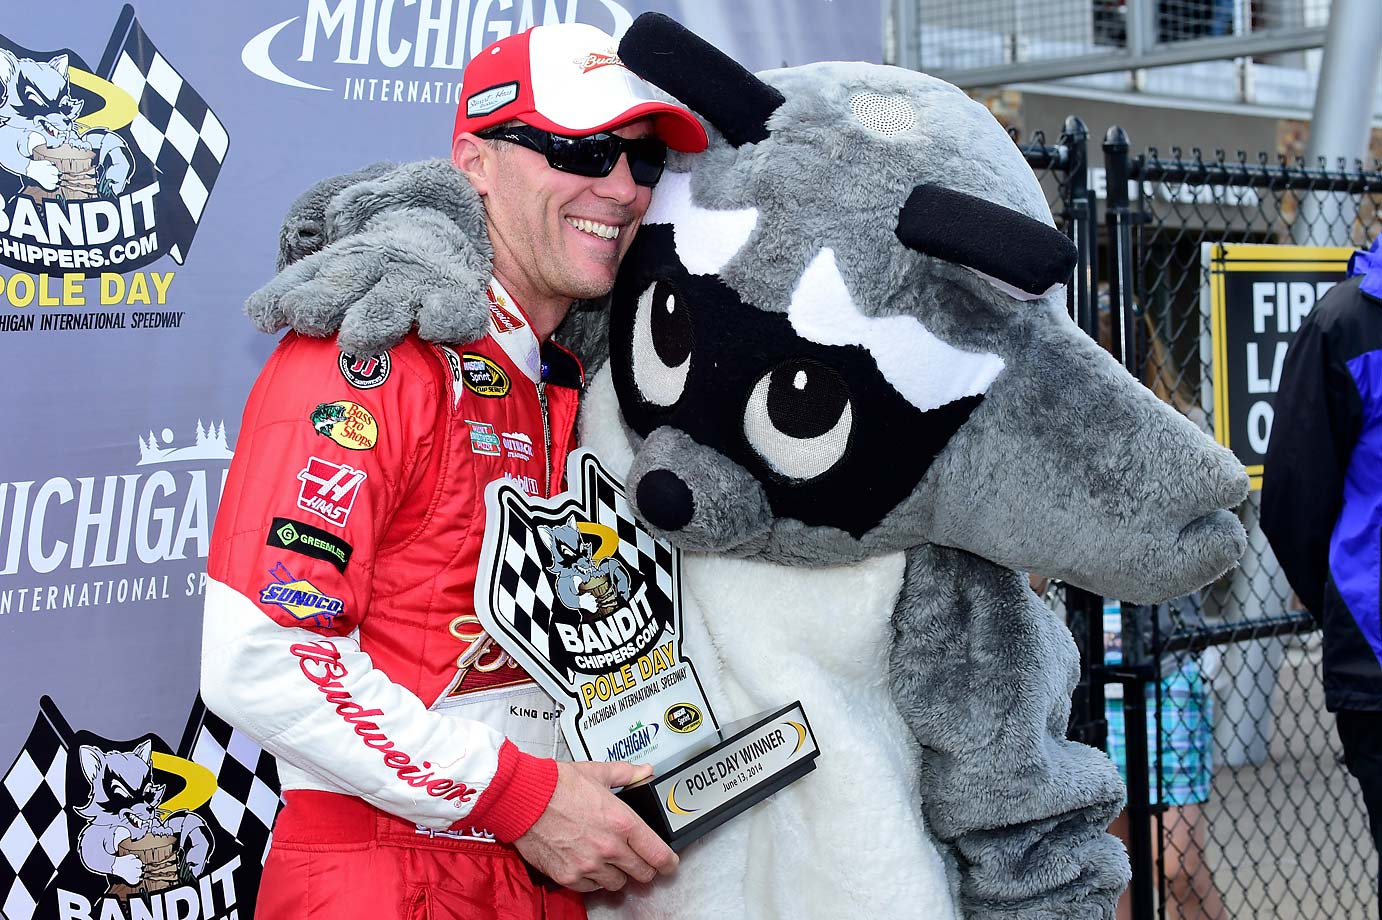 Kevin Harvick gets a hug from Bandit after winning the Pole Award at Michigan International Speedway.